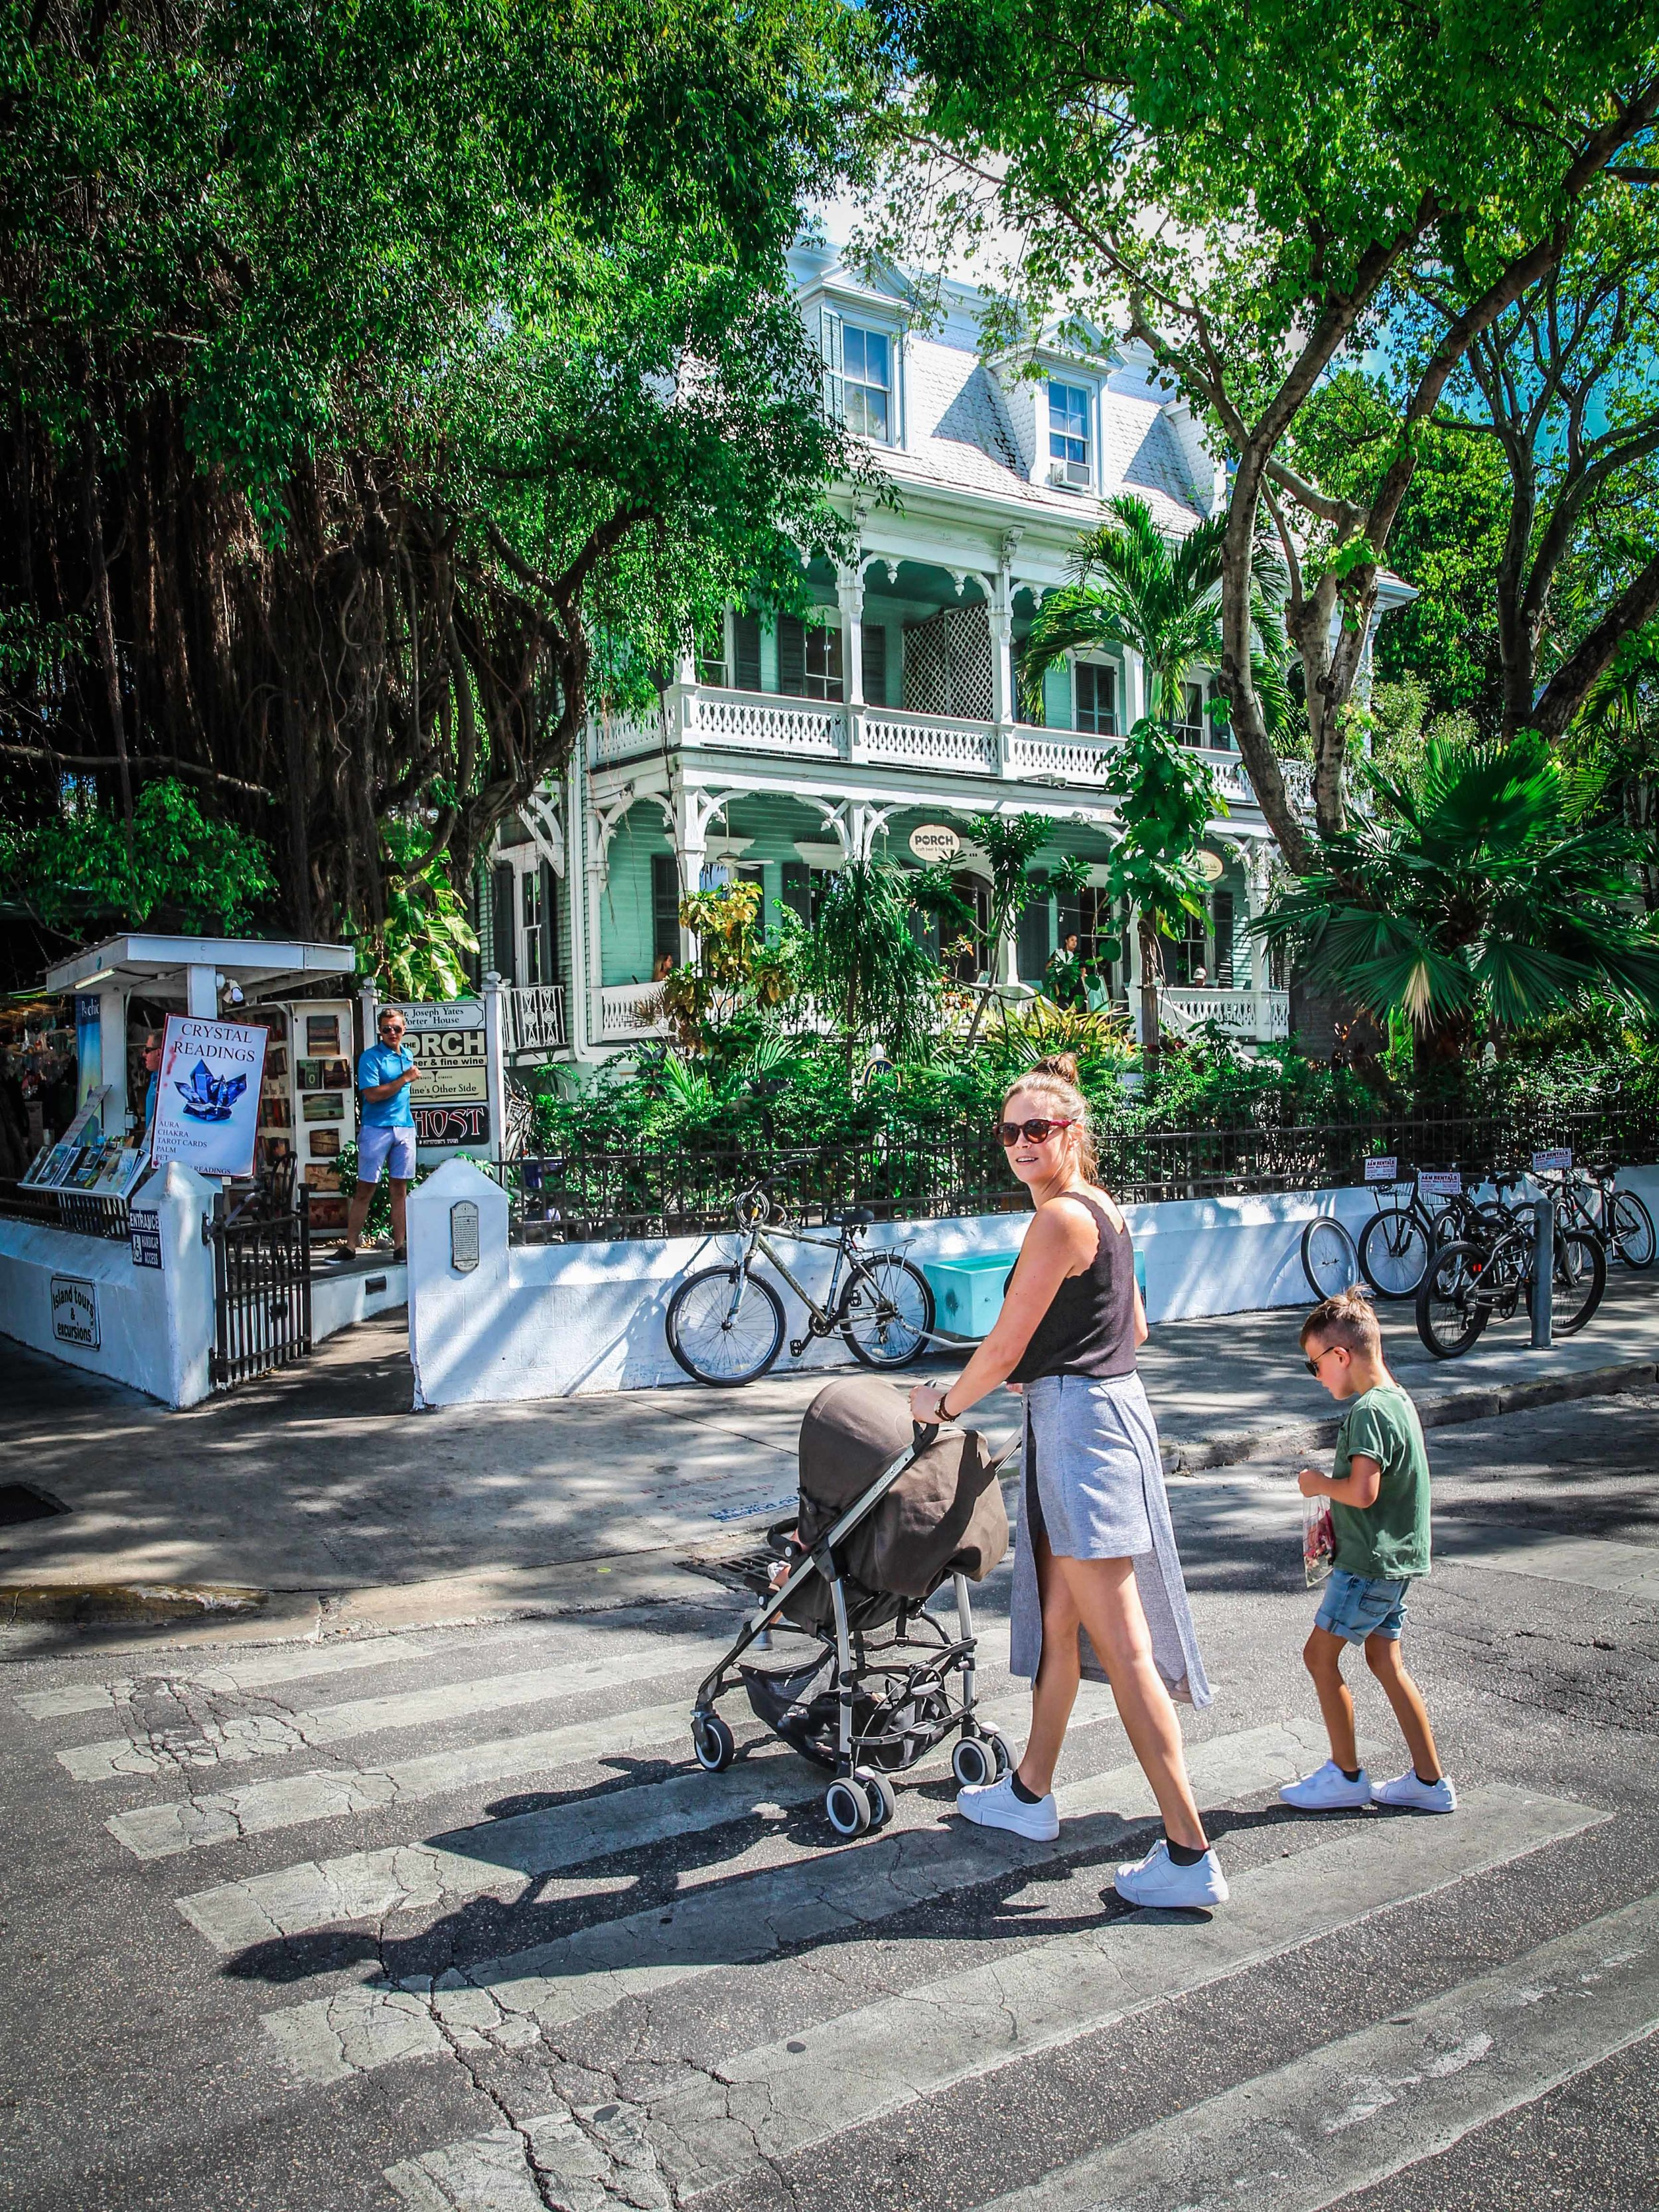 Florida_keys-_Key_west_To_do_reizen_met_kinderen-20.jpg